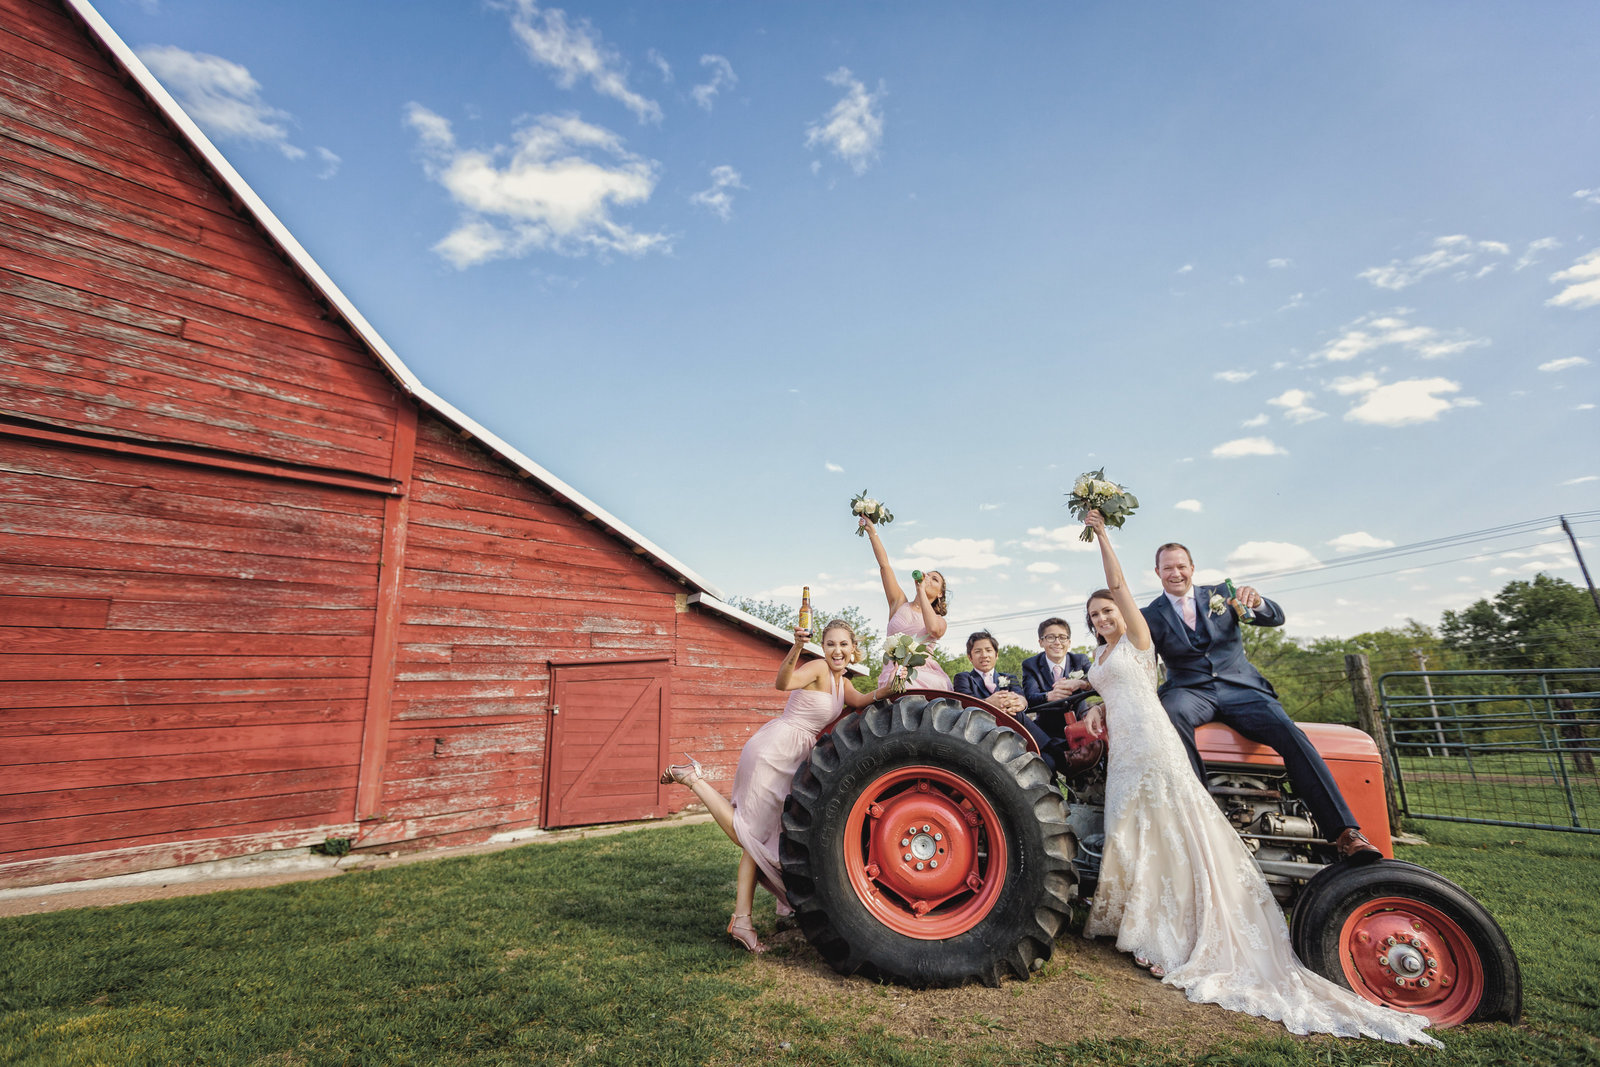 Rustic Grace Estate family wedding photo on a tractor